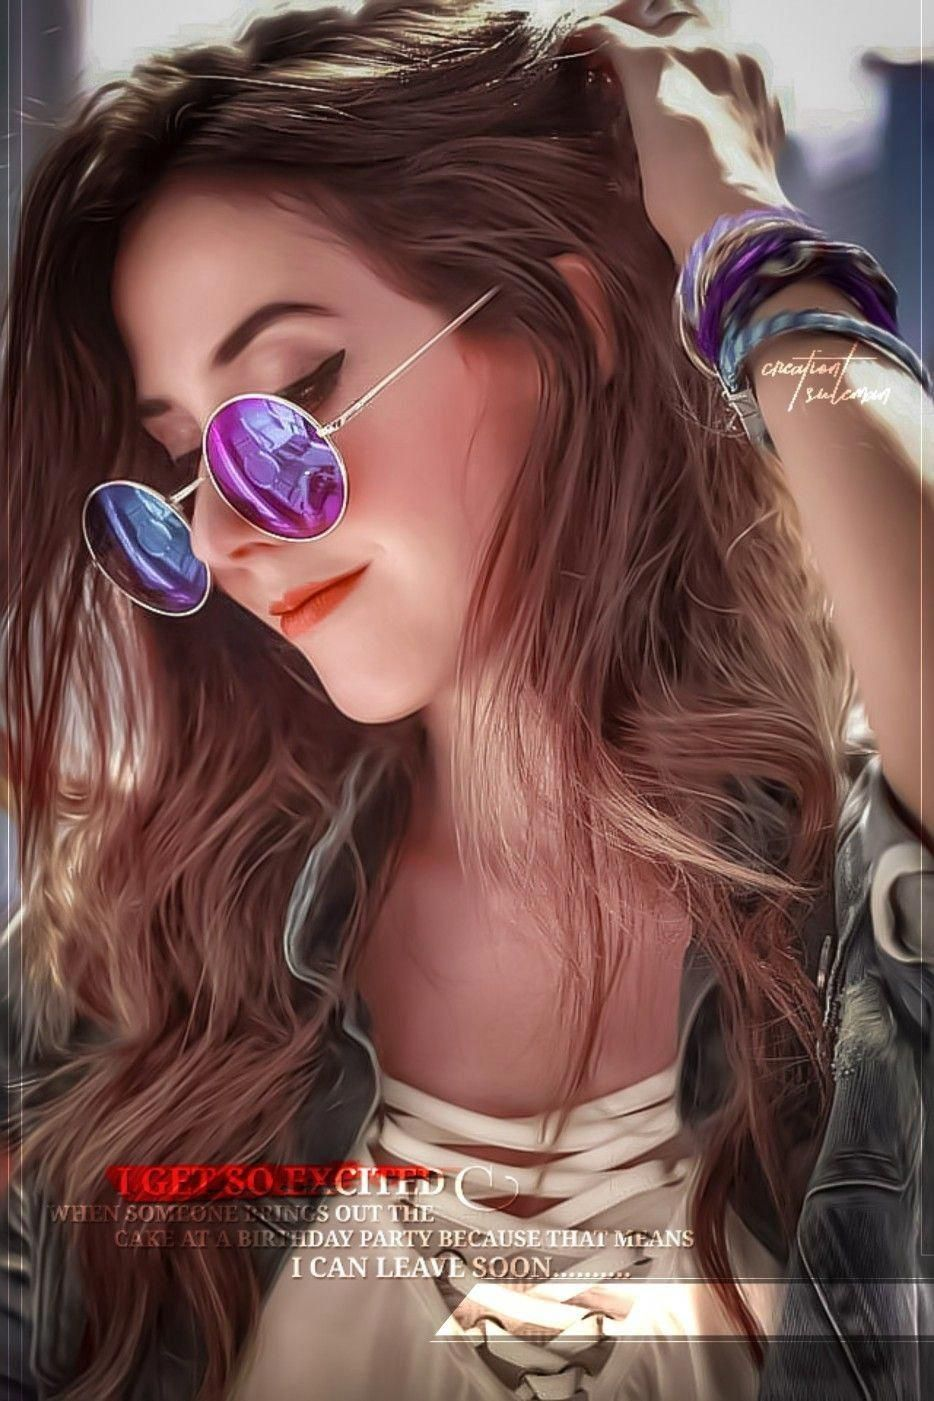 All New Girls Attitude Pics Collection All Type Whatsapp And